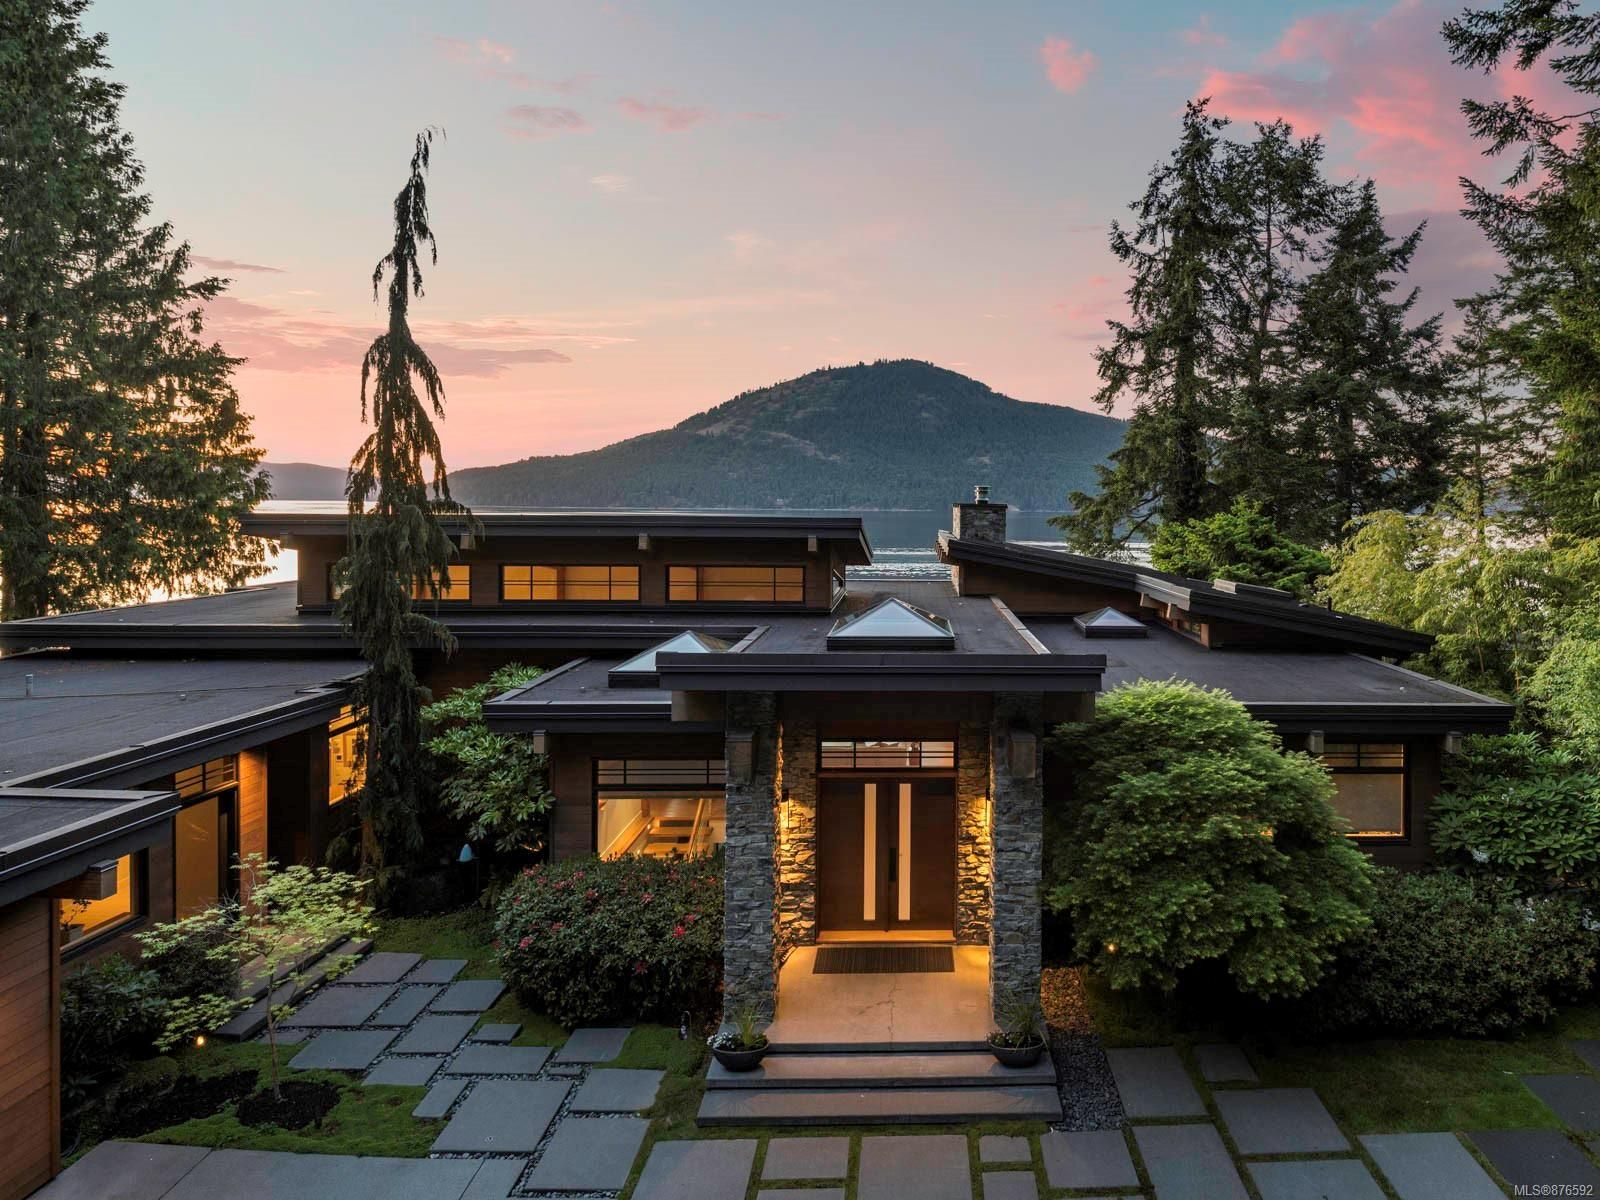 Main Photo: 702 Lands End Rd in : NS Lands End House for sale (North Saanich)  : MLS®# 876592